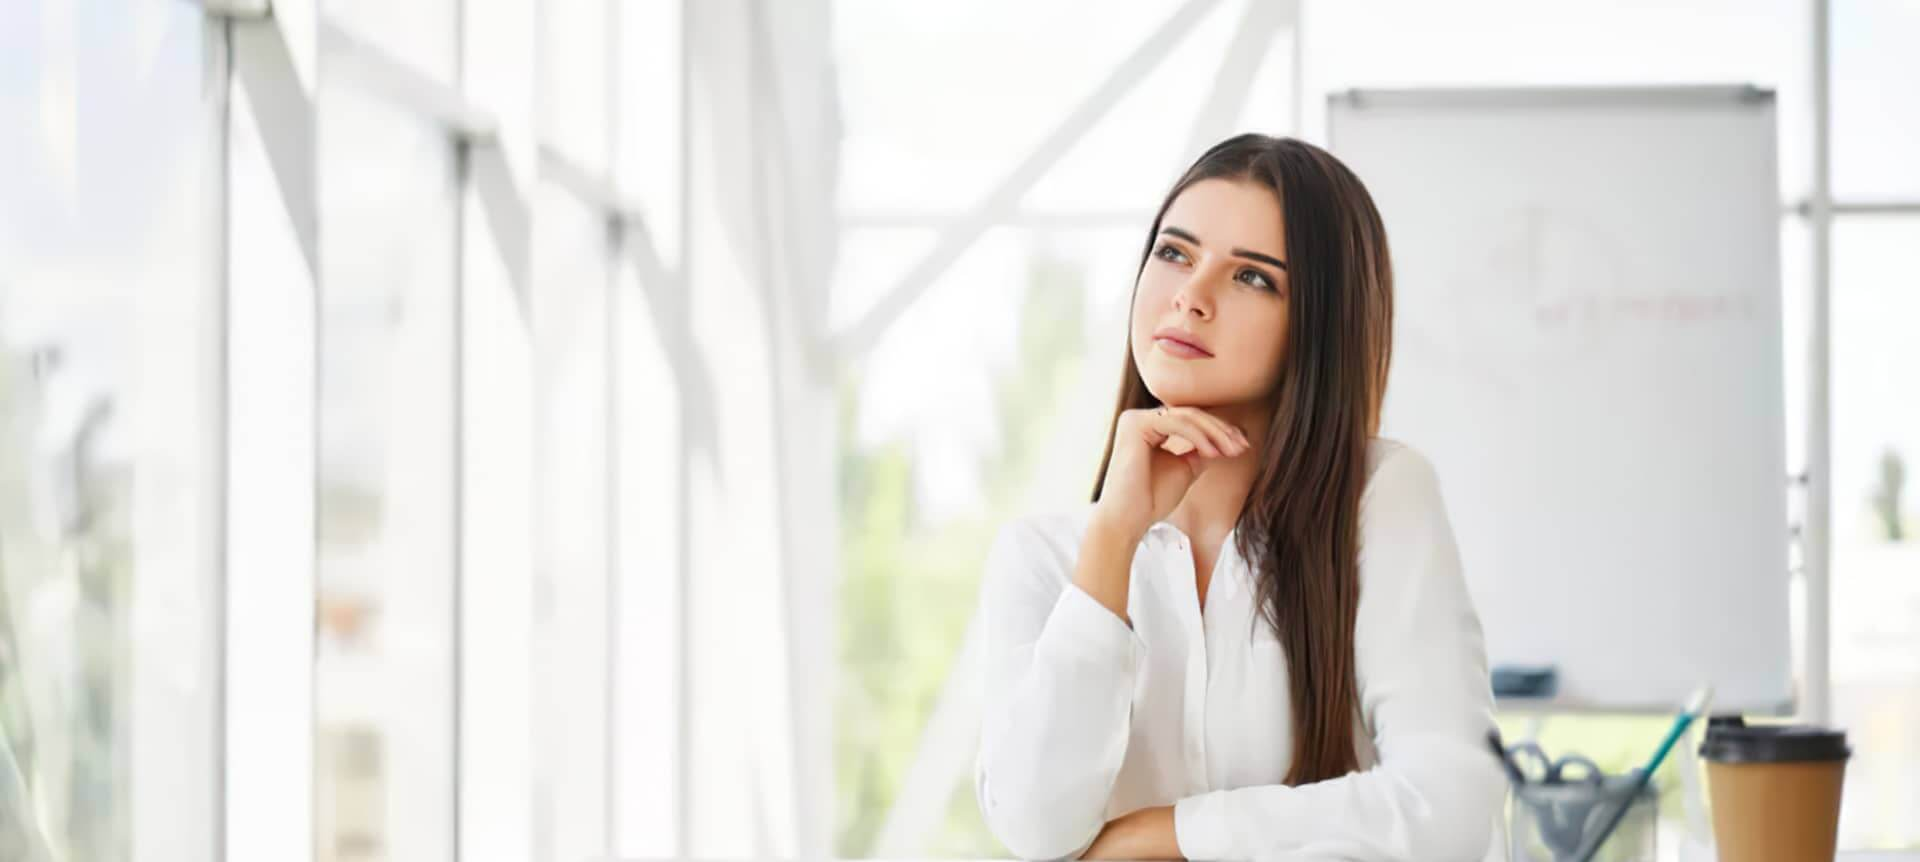 A female recruiter looking pensively to the side